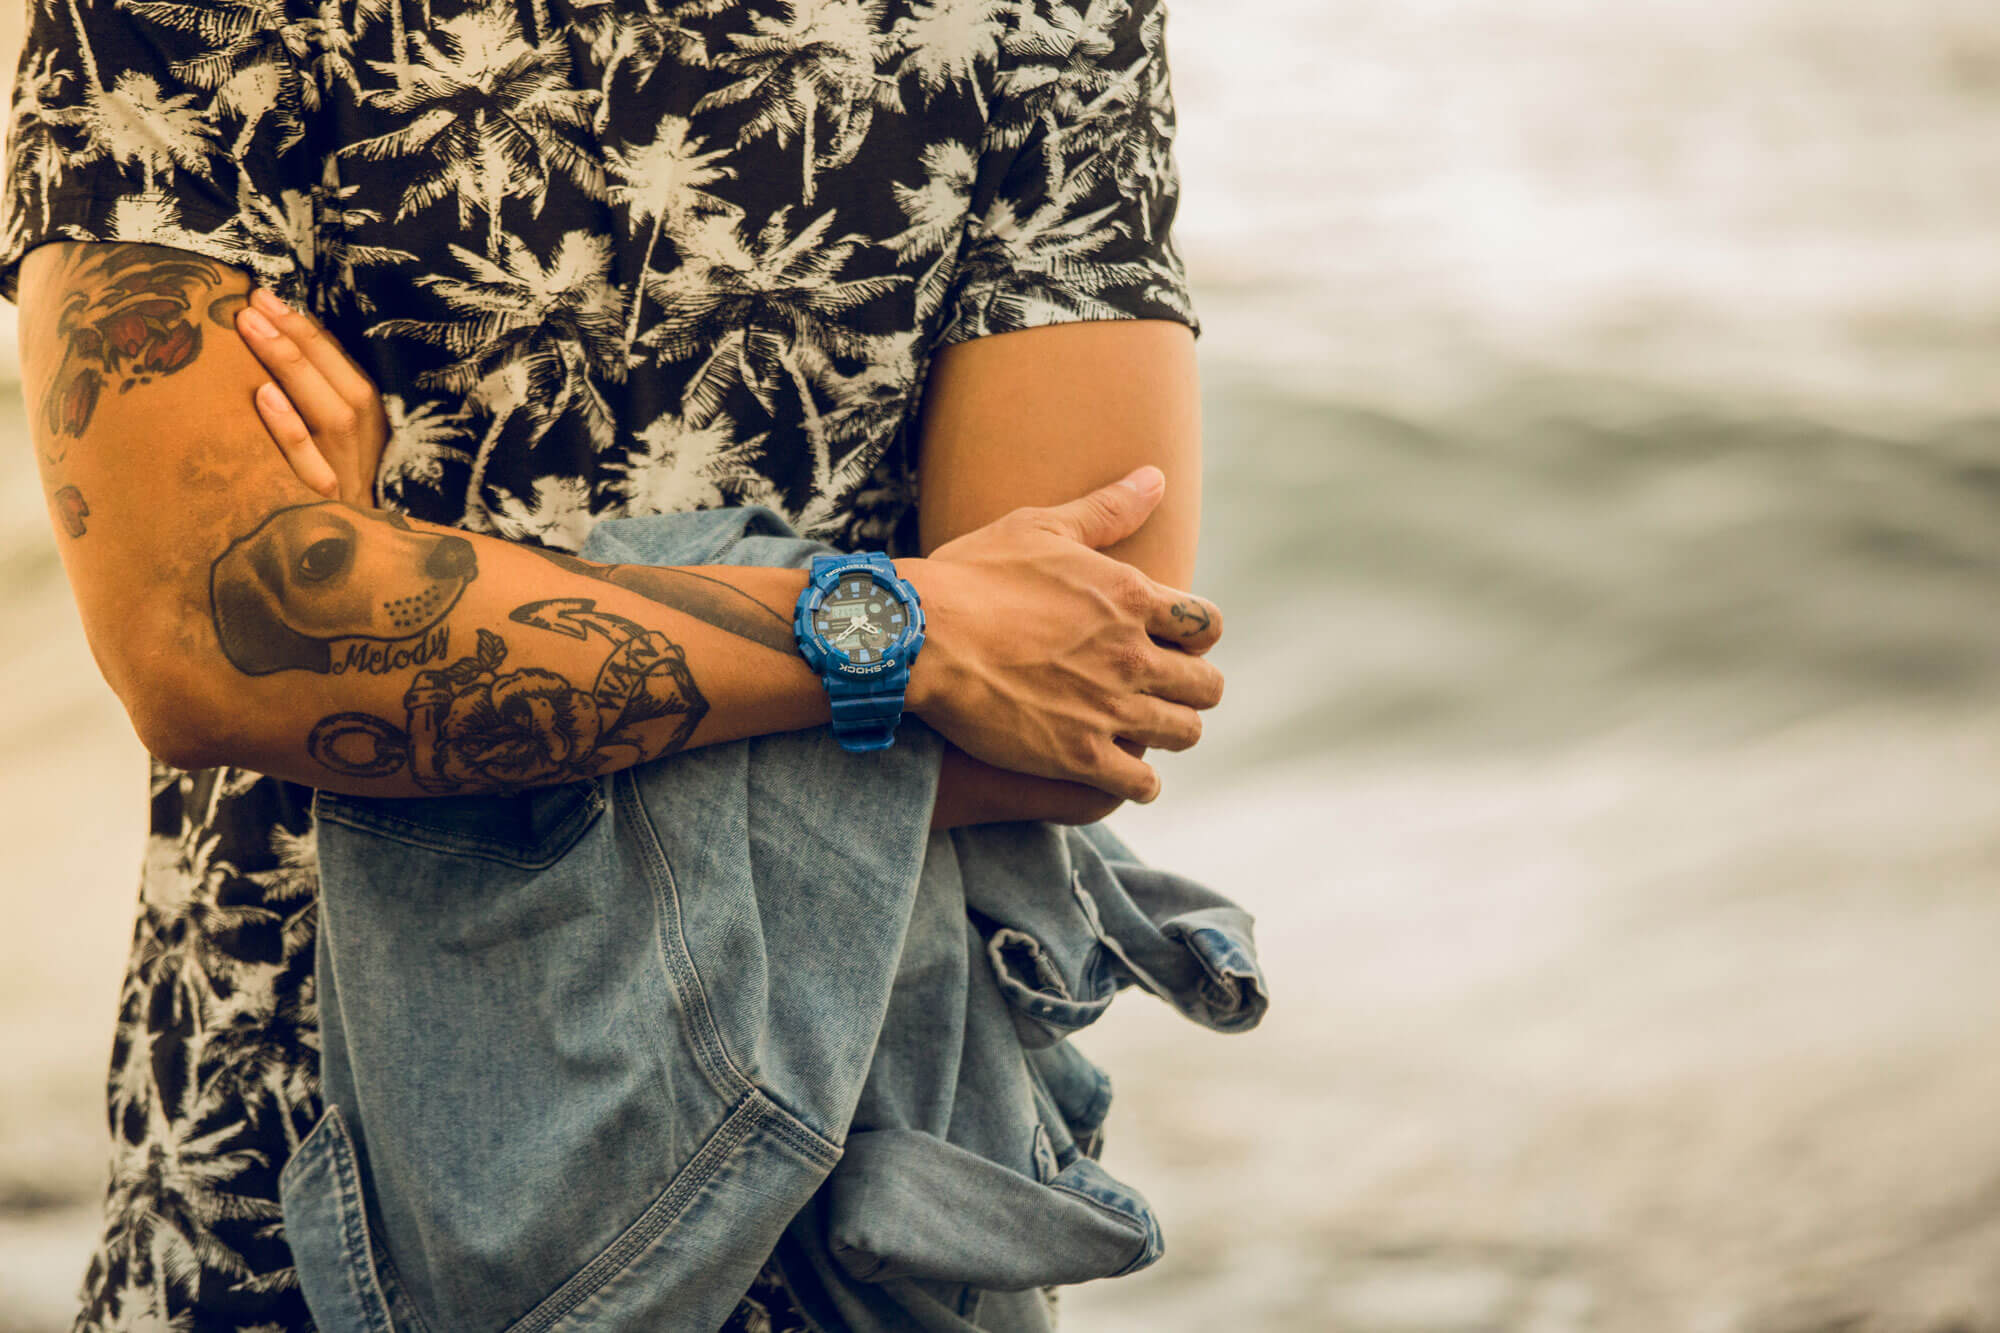 [Live Photos] G-SHOCK-G G-LIDE  Summer Lookbook – GAX-100MB-2A